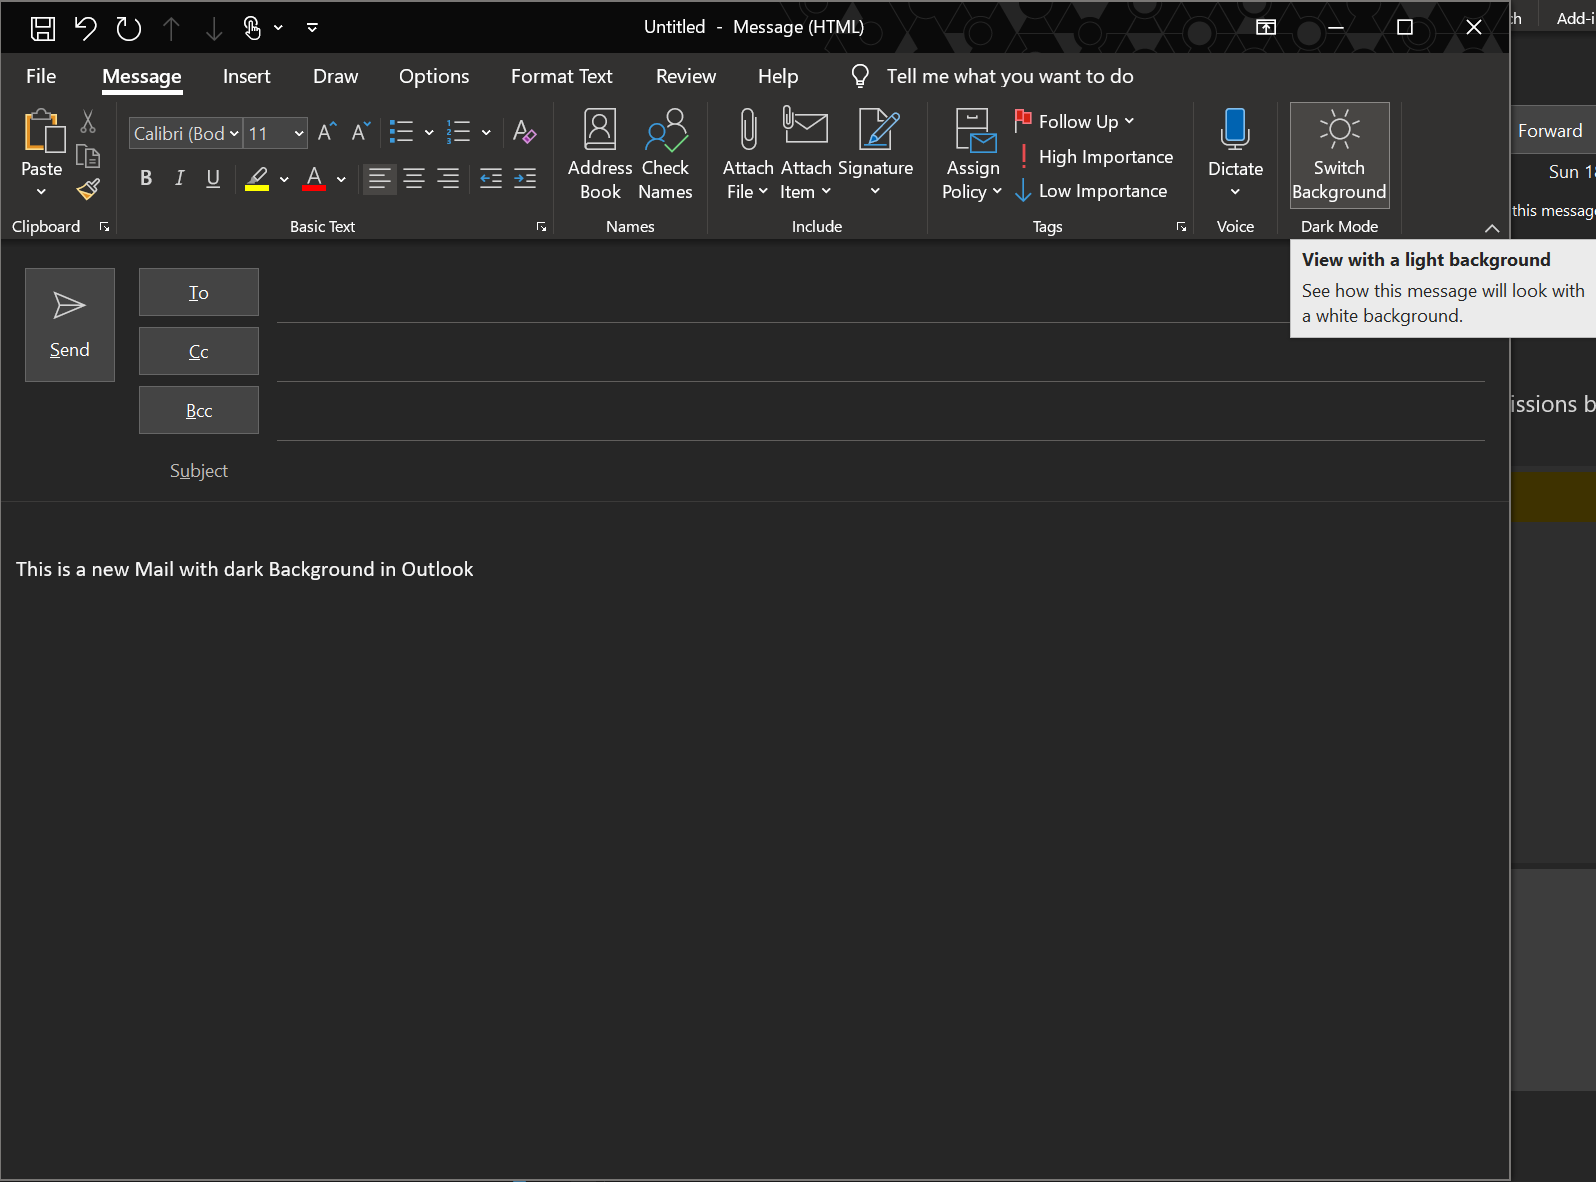 Outlook Has A Real Dark Mode Patrickriedl At